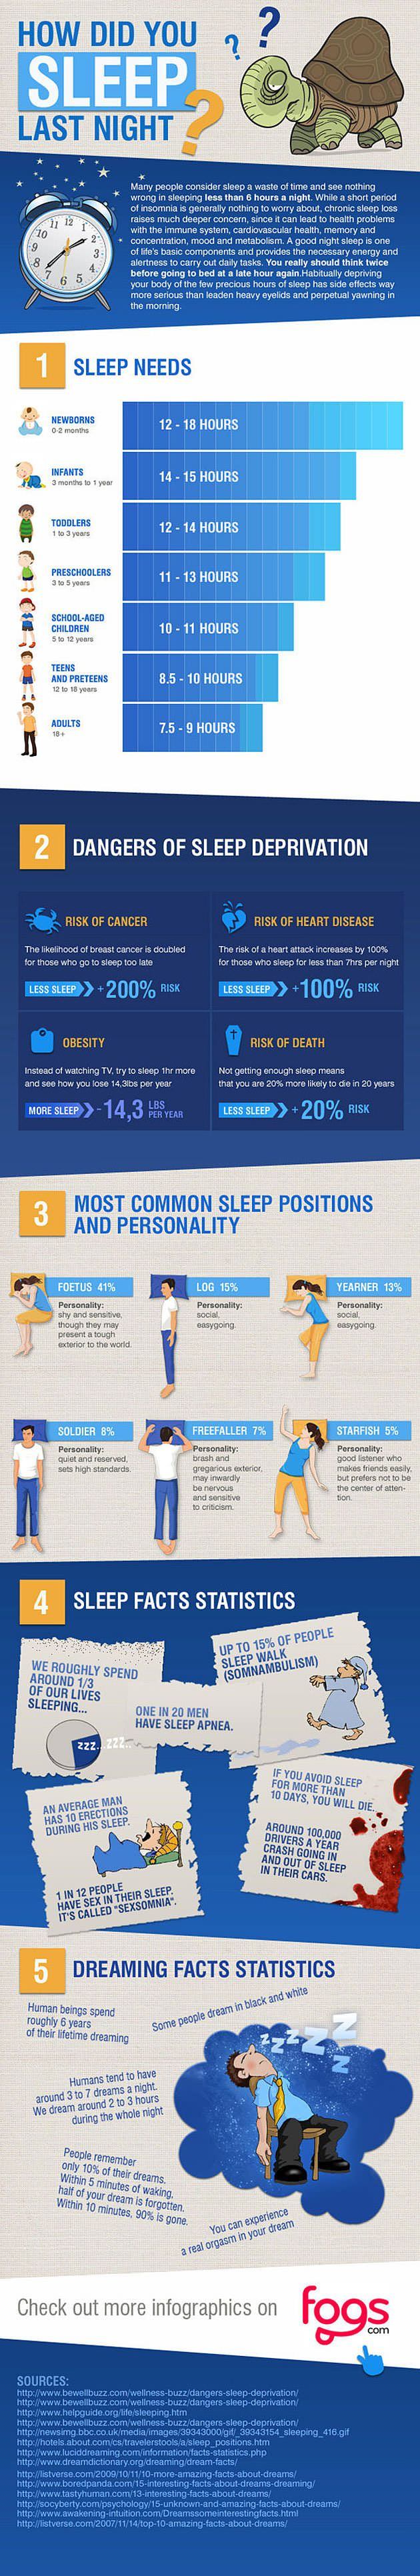 The Snoozle slide sheet is a great option for better sleep if you're in pain. www.thesnoozle.com How Did You Sleep Last Night Infographic #sleep #tips #sleeping